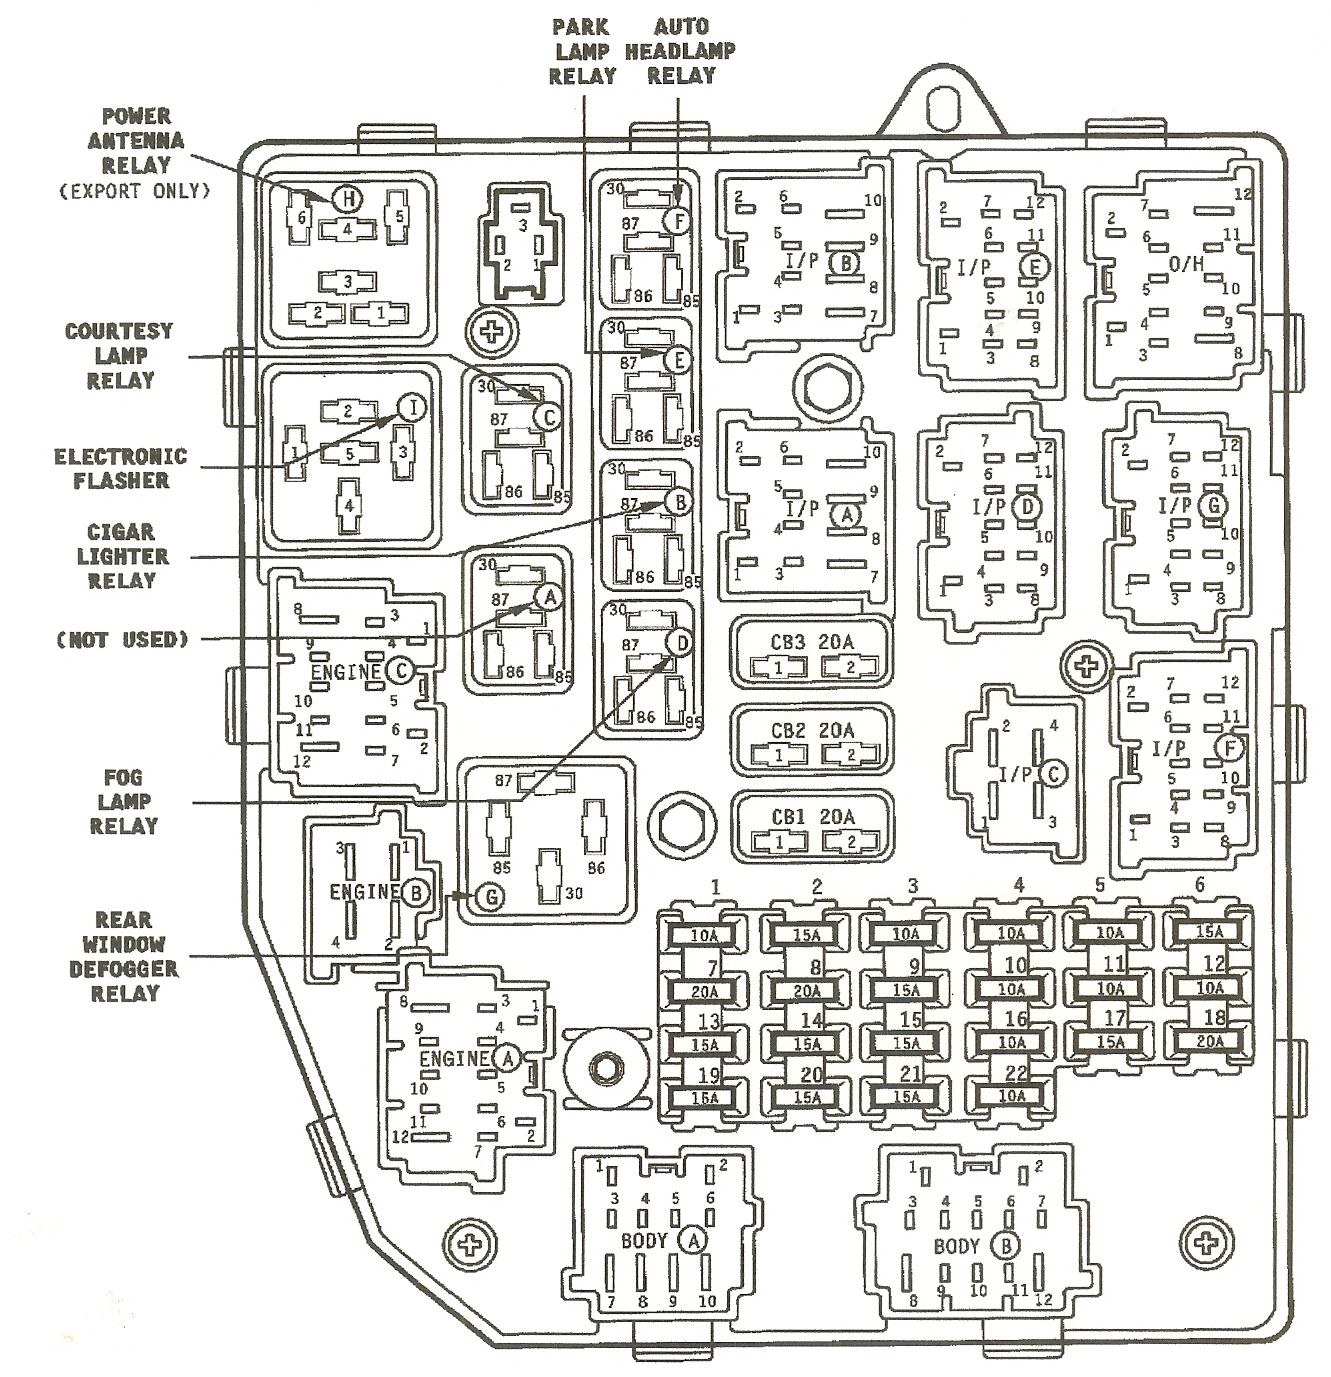 [DIAGRAM] 1999 Jeep Grand Cherokee Laredo Fuse Box Diagram